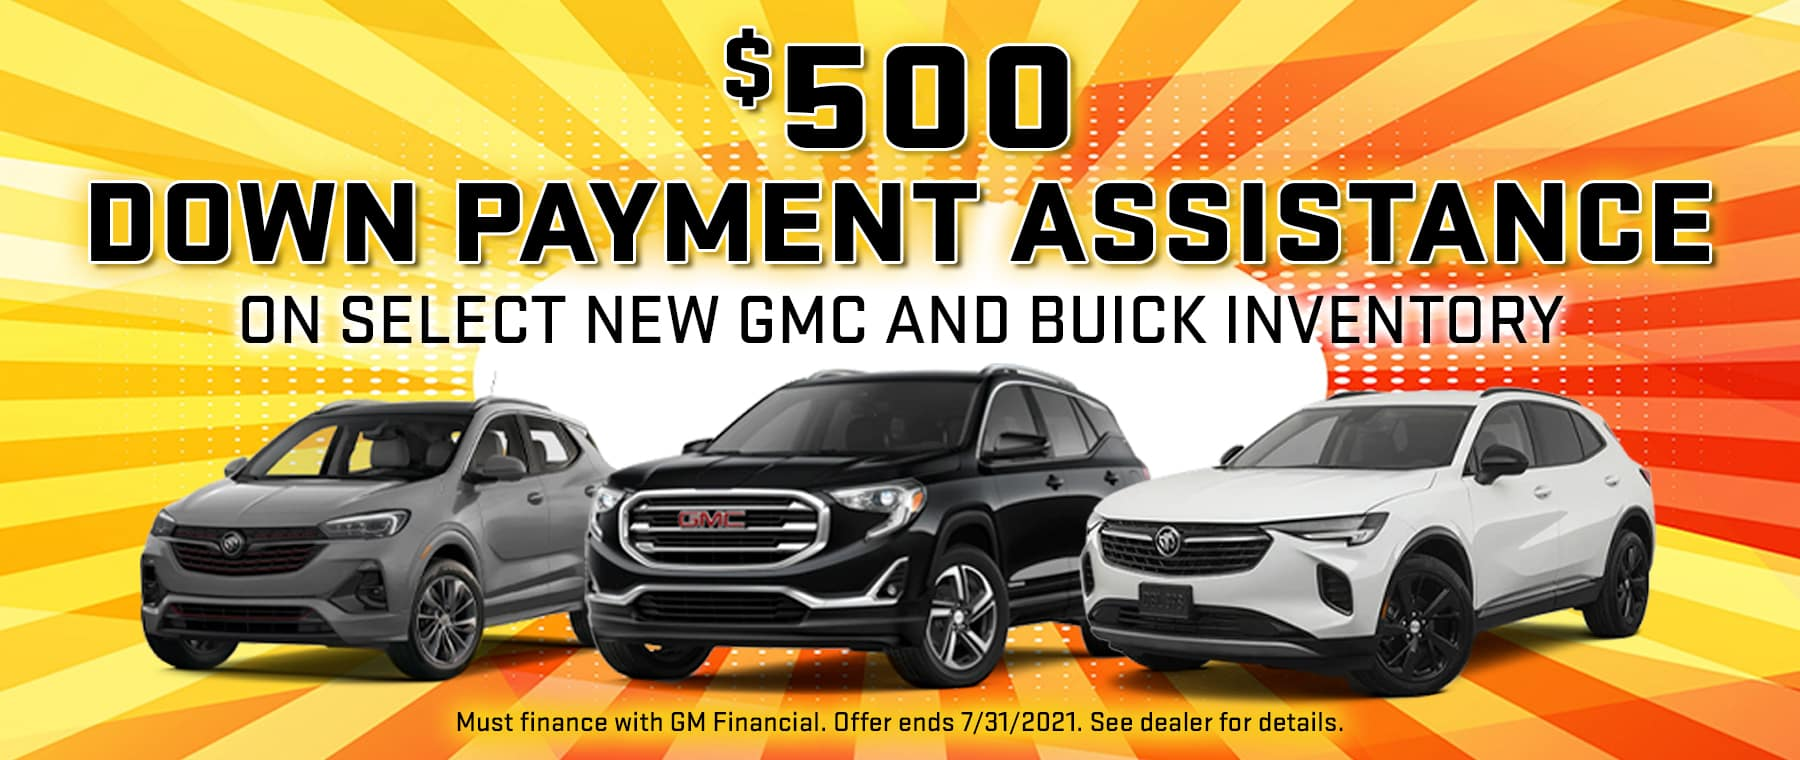 $500 Down Payment Assistance